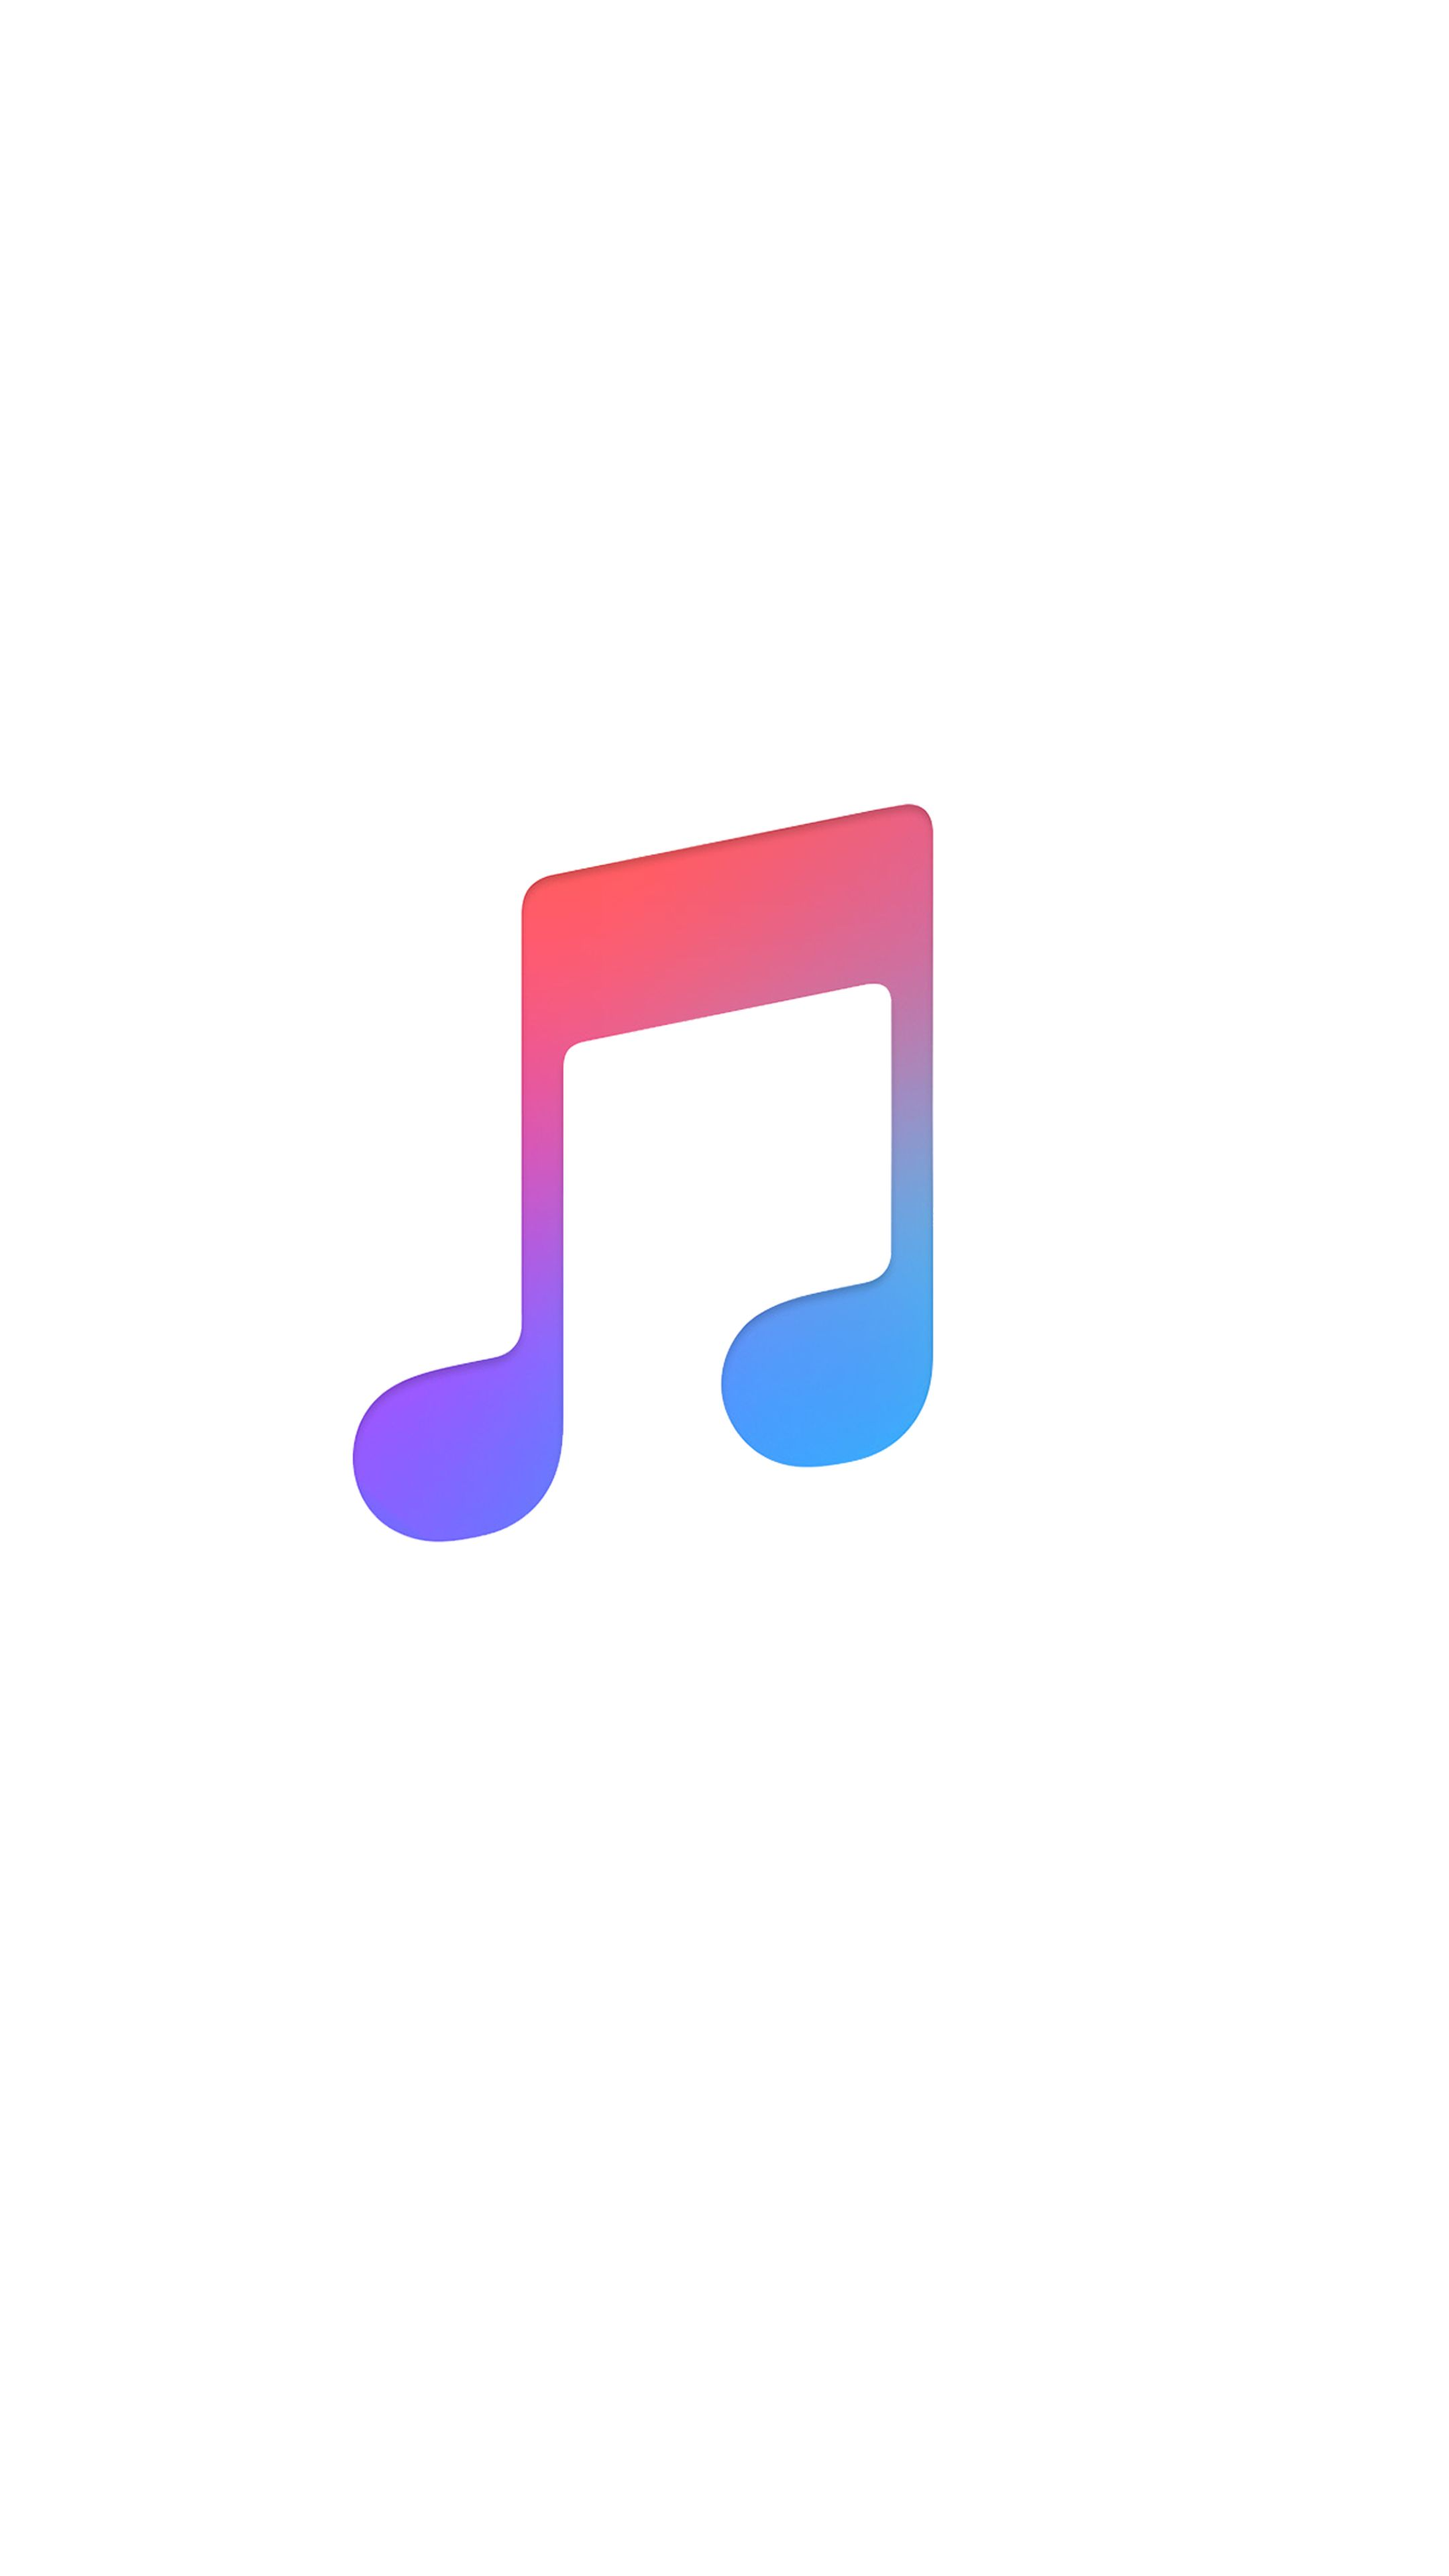 Apple music logo wallpaper Papeis de parede, Papel de